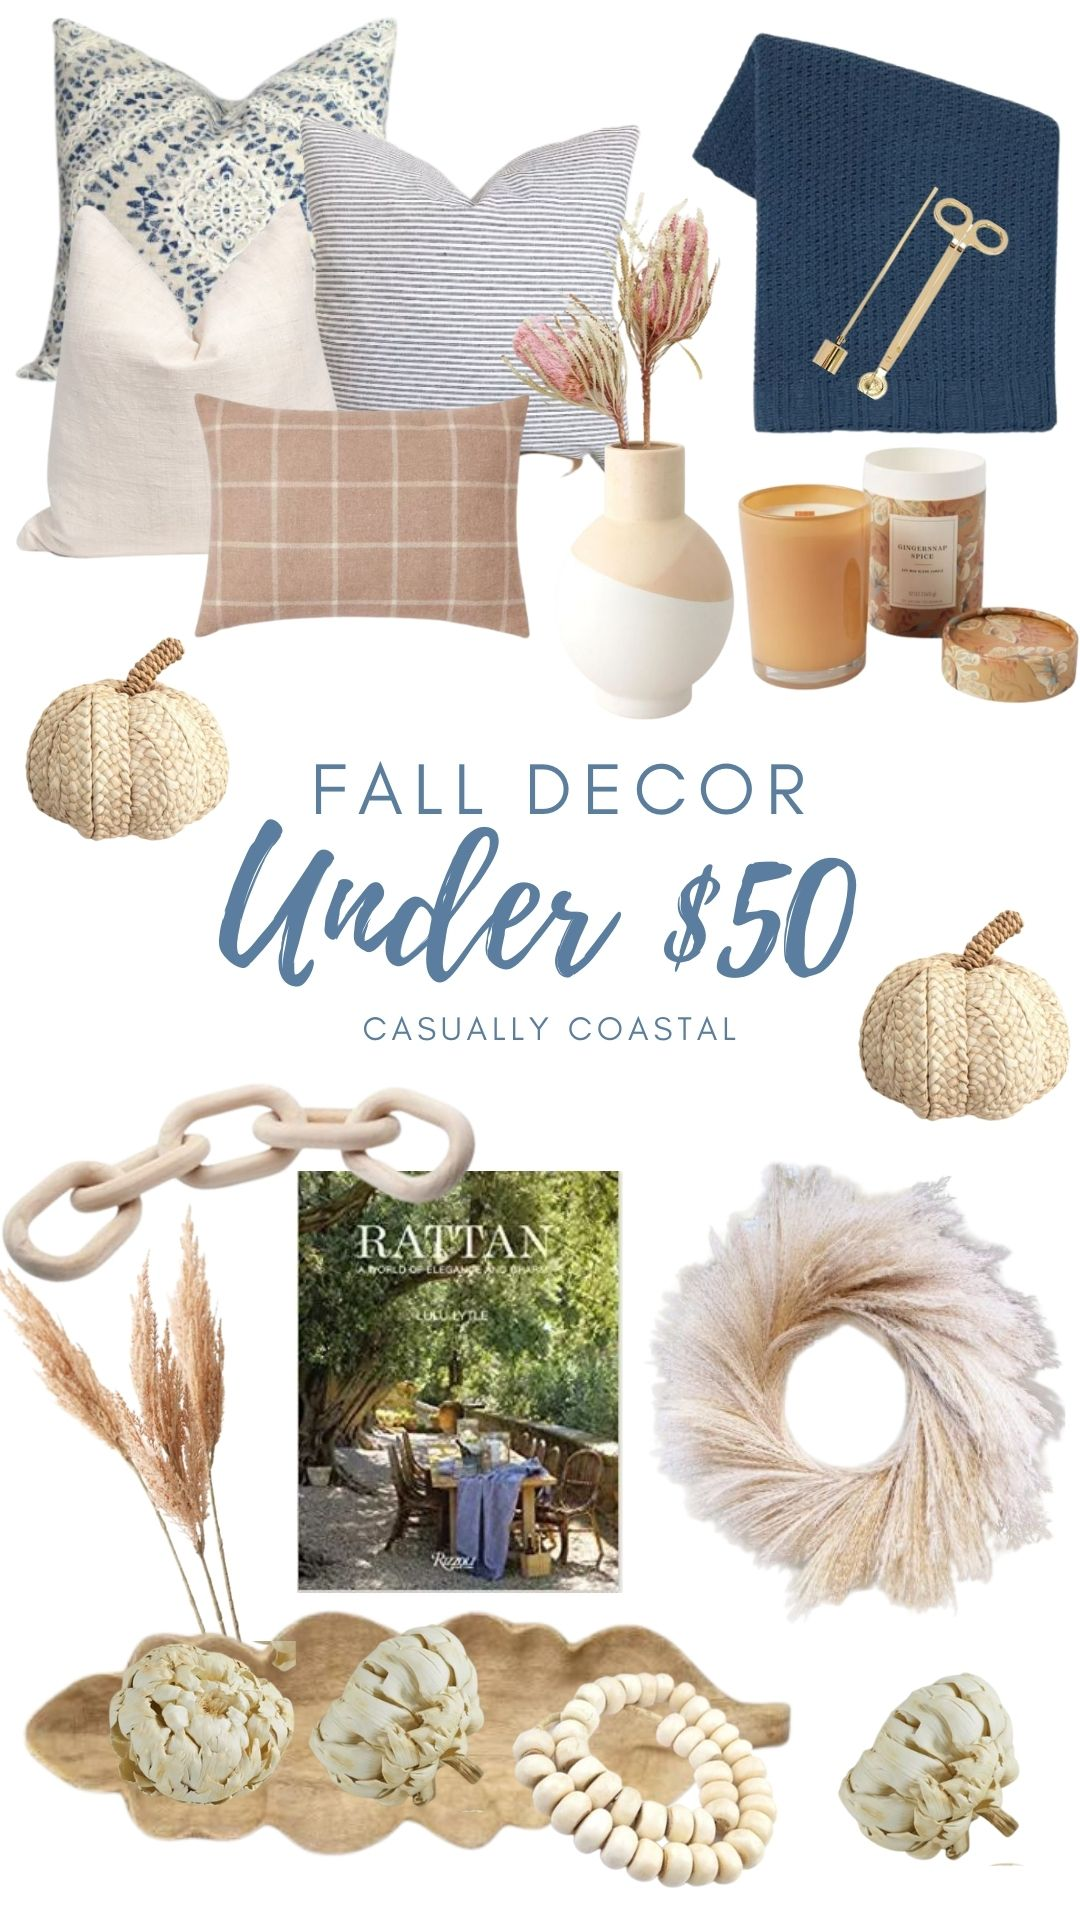 Fall Home Decorating Ideas That Are Easy on the Wallet